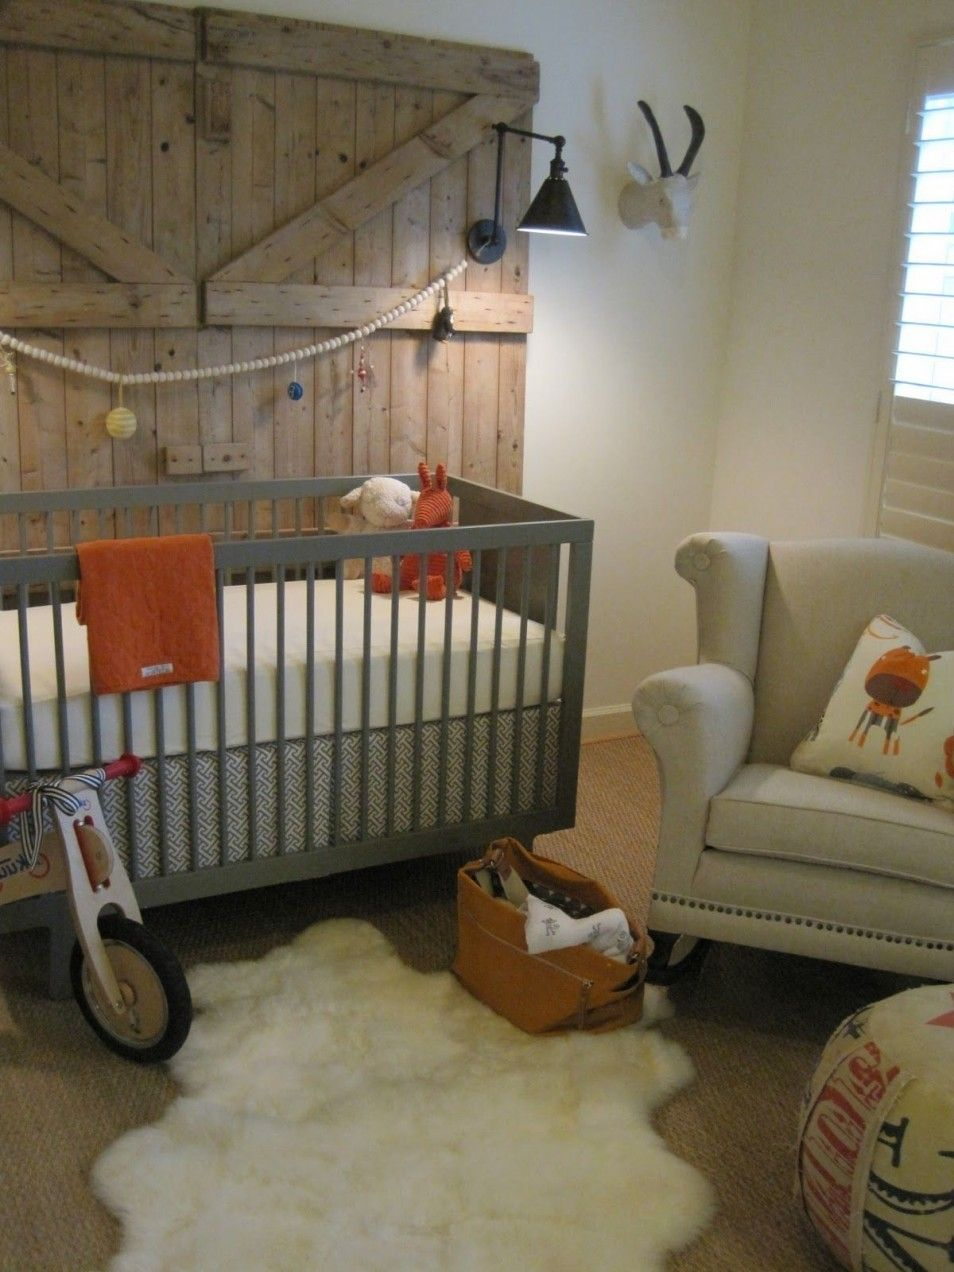 Baby boy room decor pinterest - Baby Boy Room Themes With Attractive Colors Baby Room Decor Boy Baby Room Themes For Twins